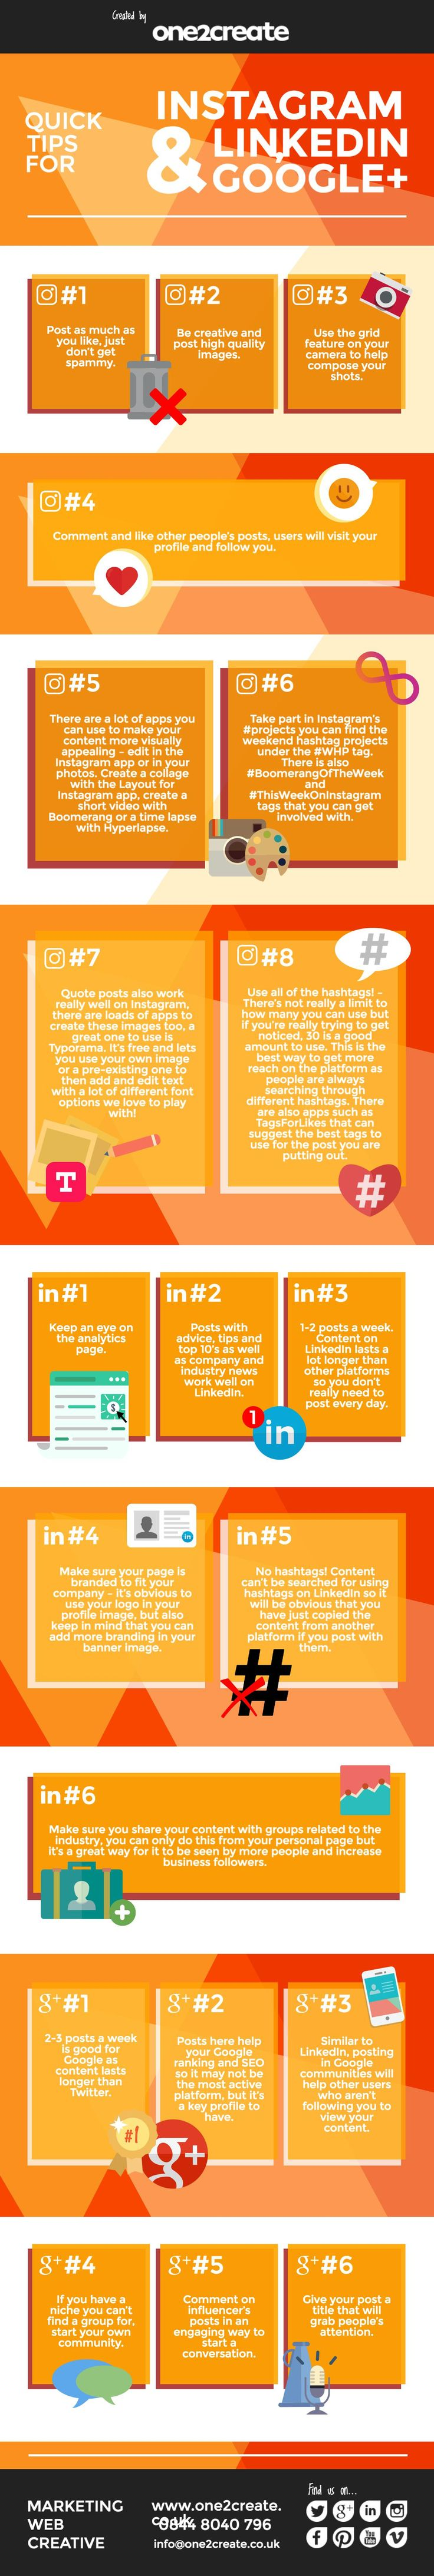 Social media is a great way to raise brand awareness. We've shared our tips for Instagram, Google + and LinkedIn in our infographic.   #infographic #Instagram #socialmedia #tips #contentmarketing